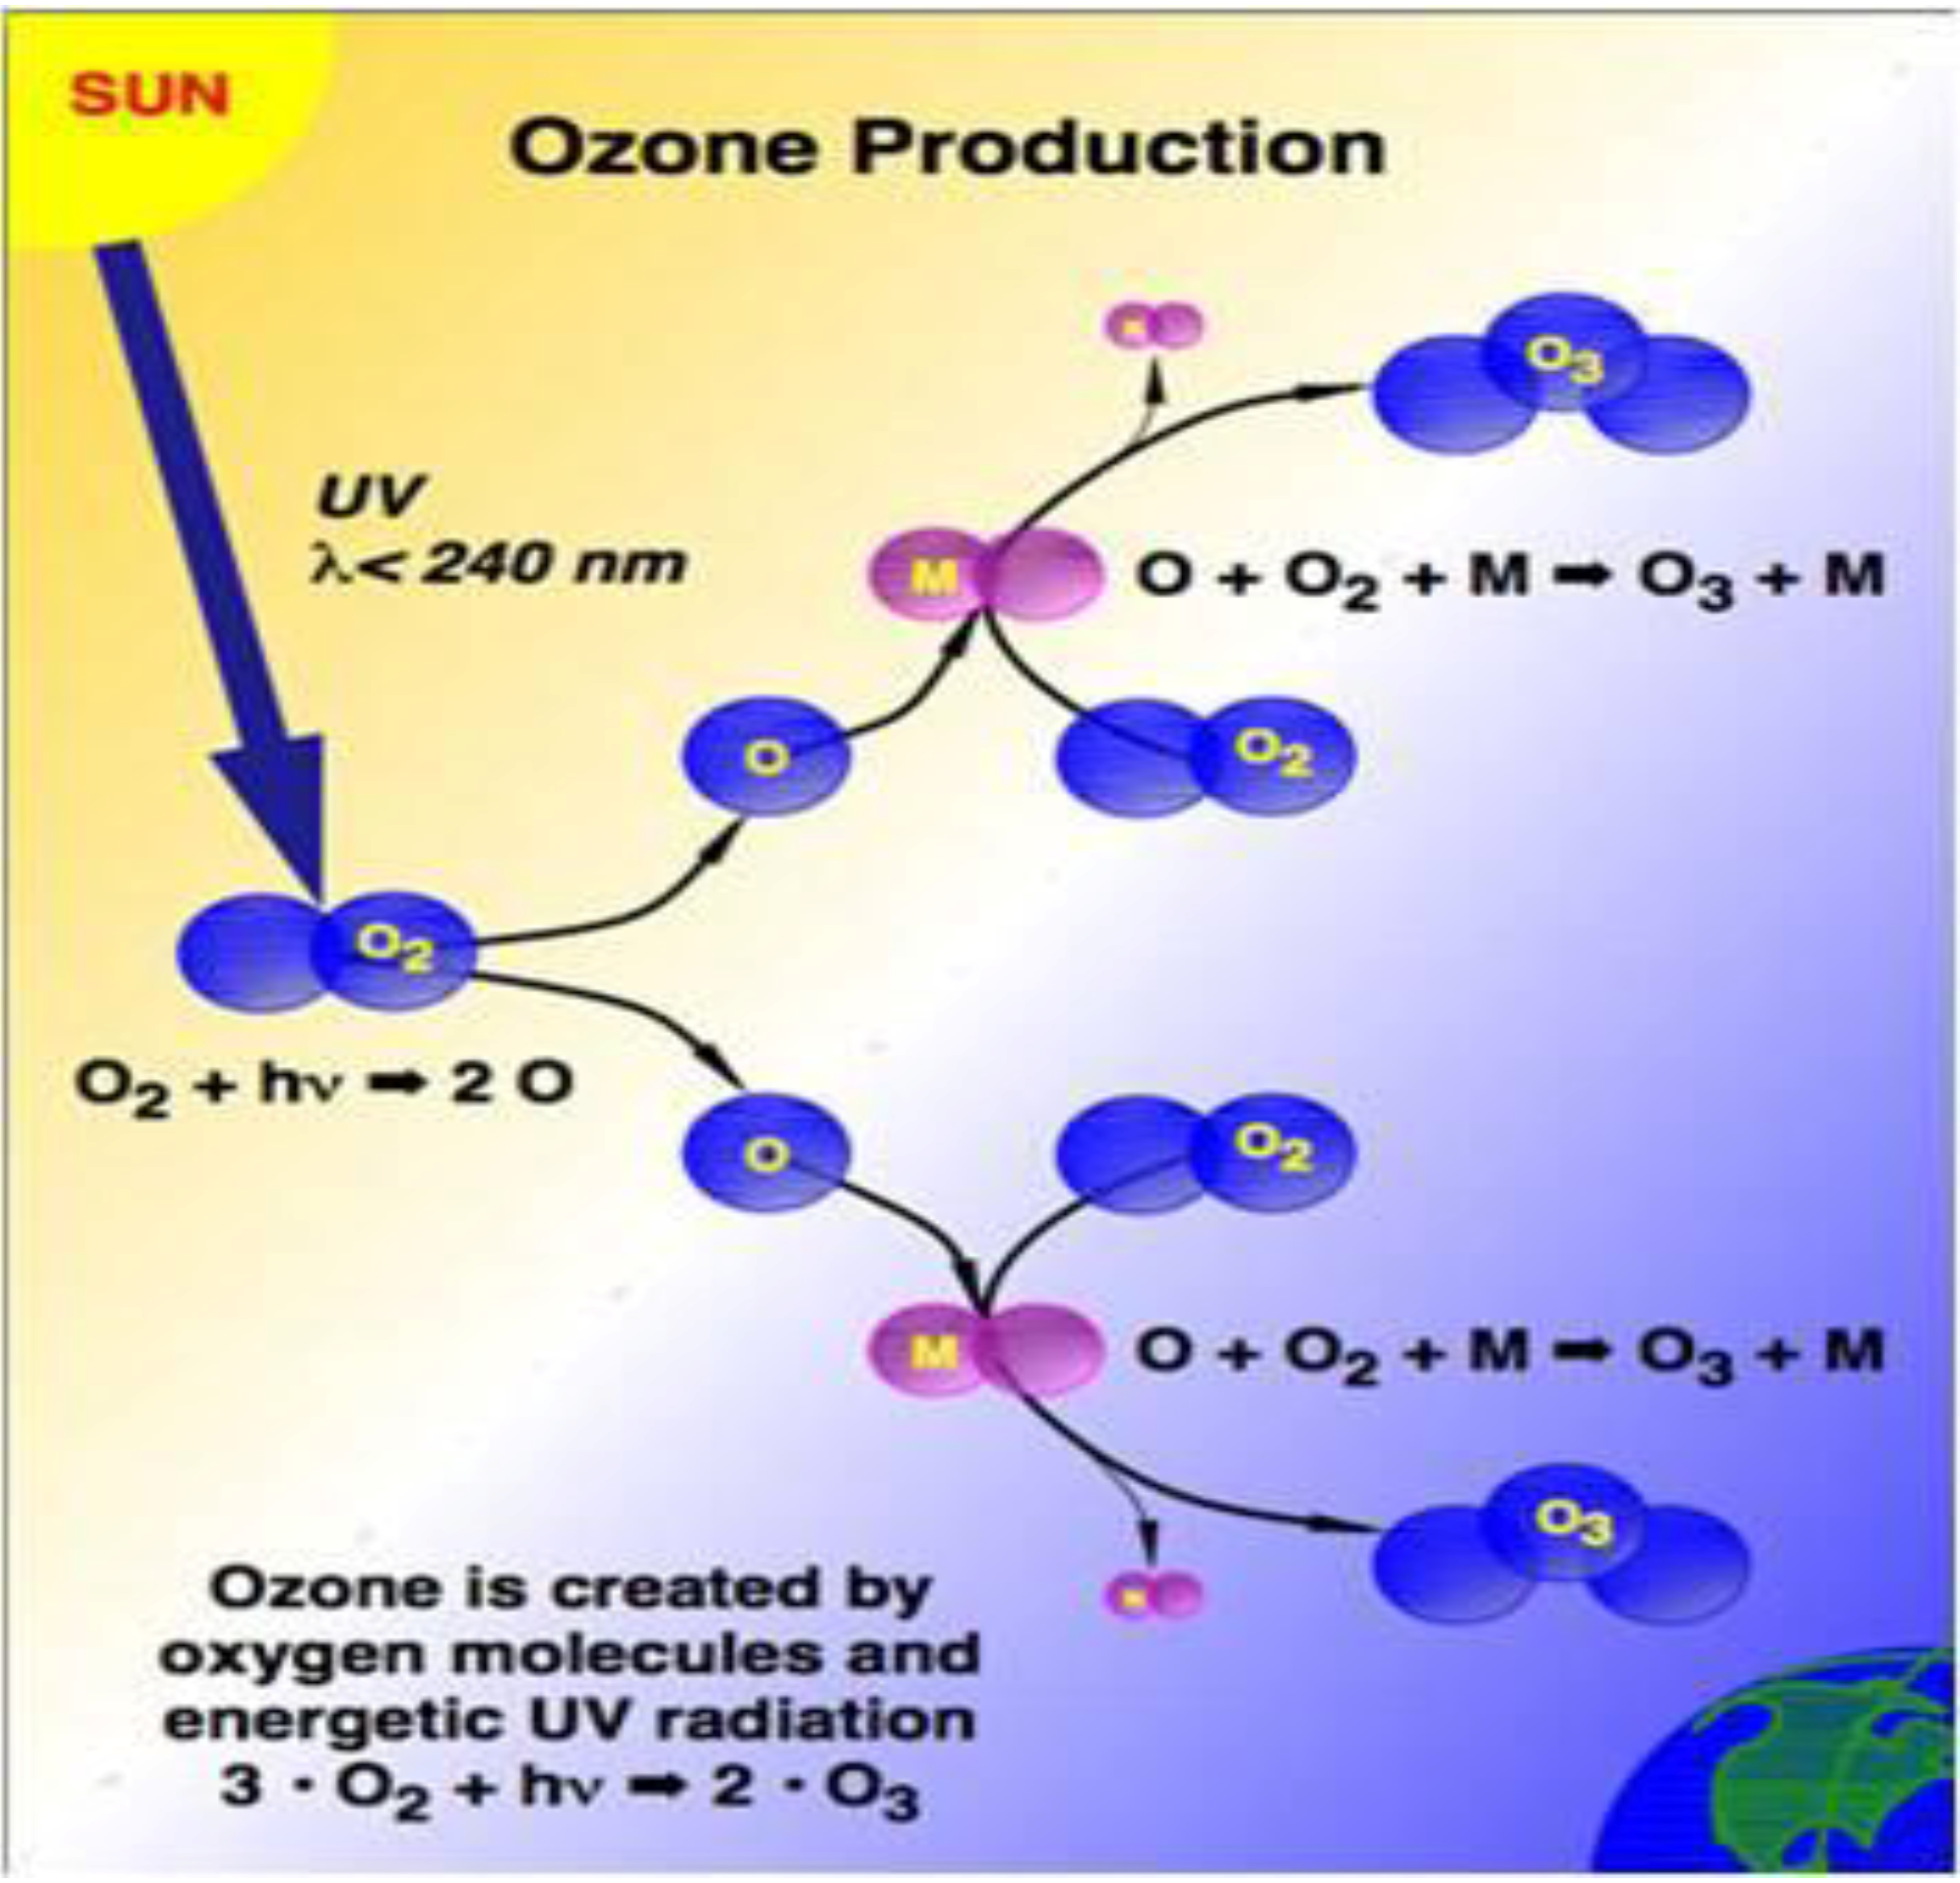 thesis statement ozone layer depletion Thesis ozone layer depletion carrier proteins transport molecules much more slowly than channels, as a number of conformational changes in the carrier are required for the transport of the solute across the membrane i started working at this corporation many years ago at arelatively junior.